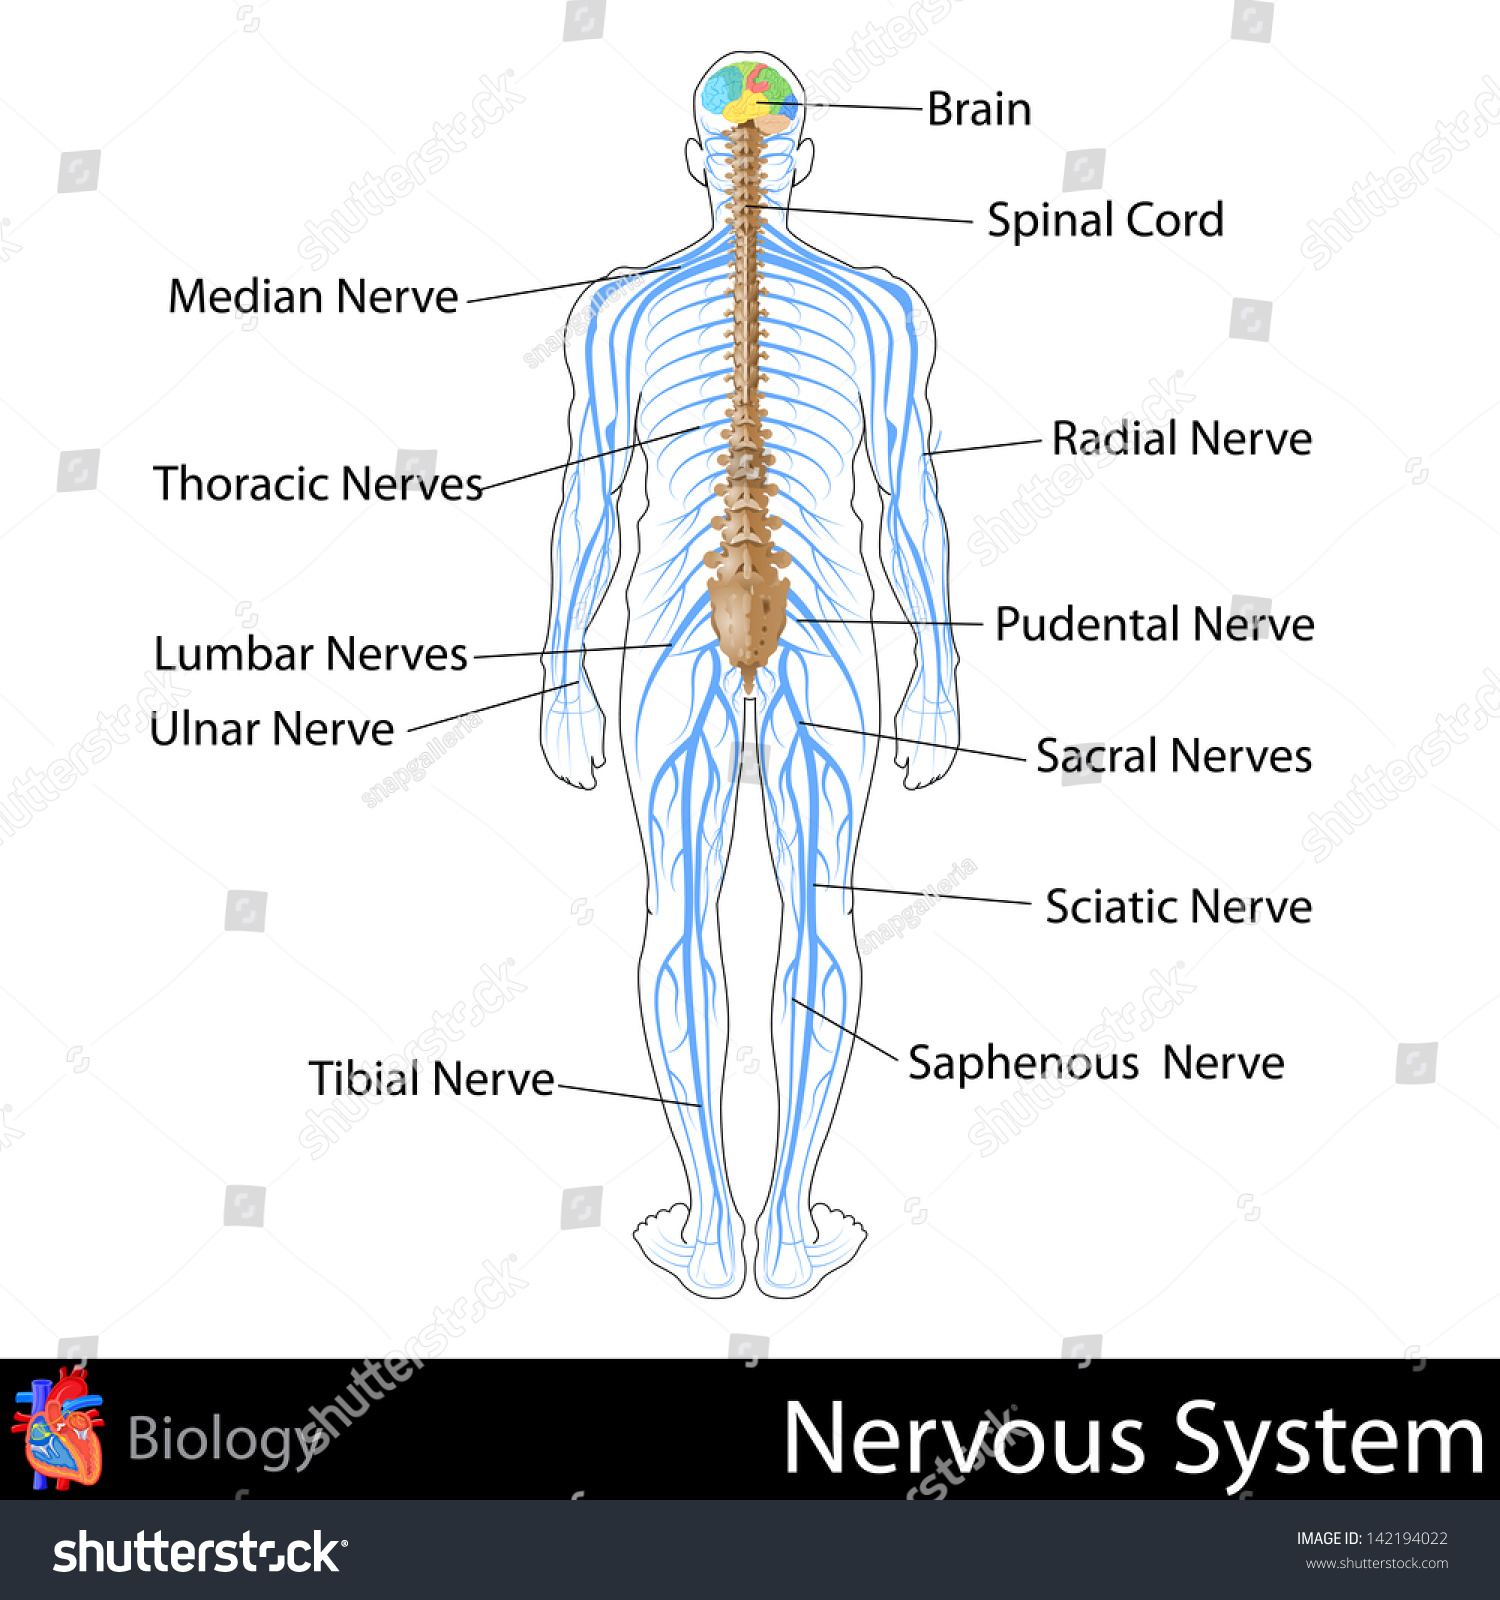 Easy Edit Vector Illustration Nervous System Stock Royalty Brain Diagram To Of